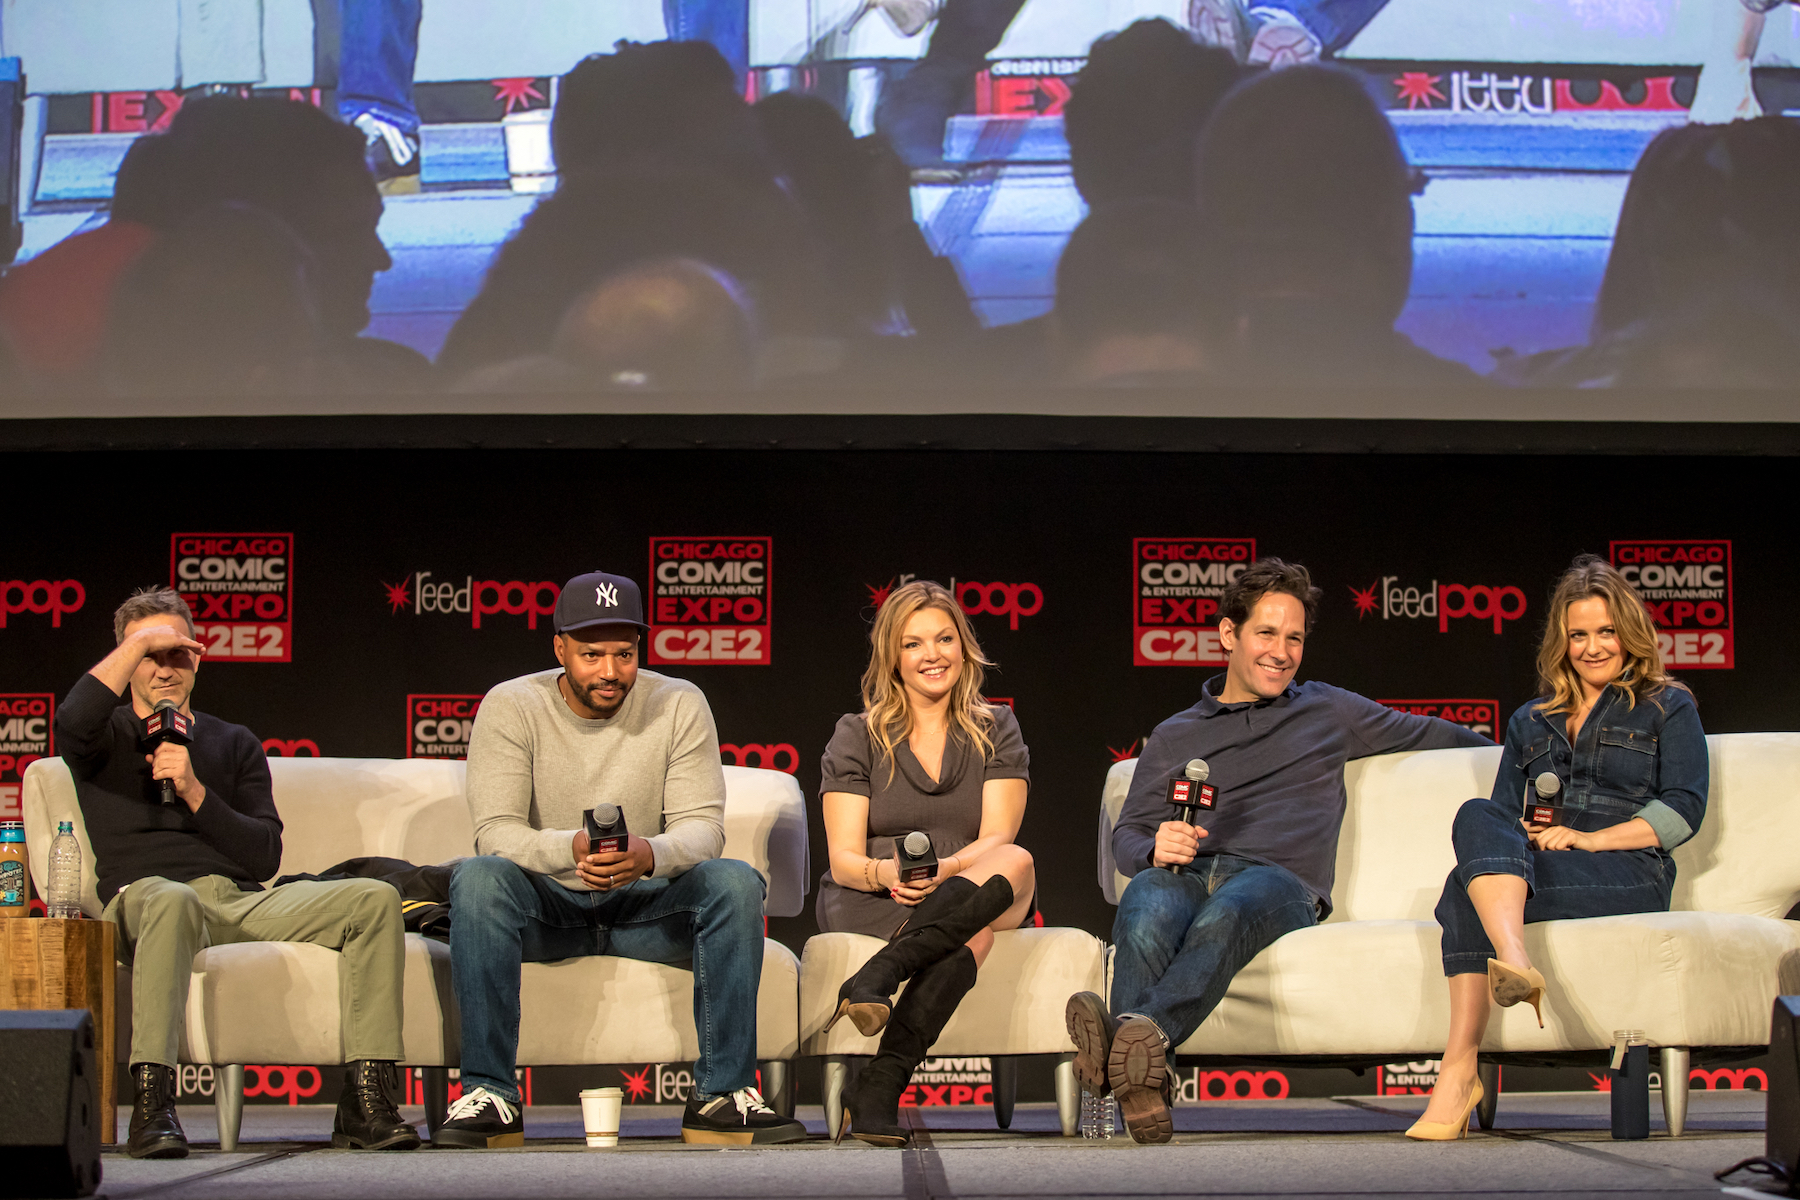 "'Clueless' Cast Reunion: See Alicia Silverstone, Paul Rudd, Donald Faison, More - ""This isn't the first time we have all gotten together,"" Scrubs alum Faison said before C2E2."